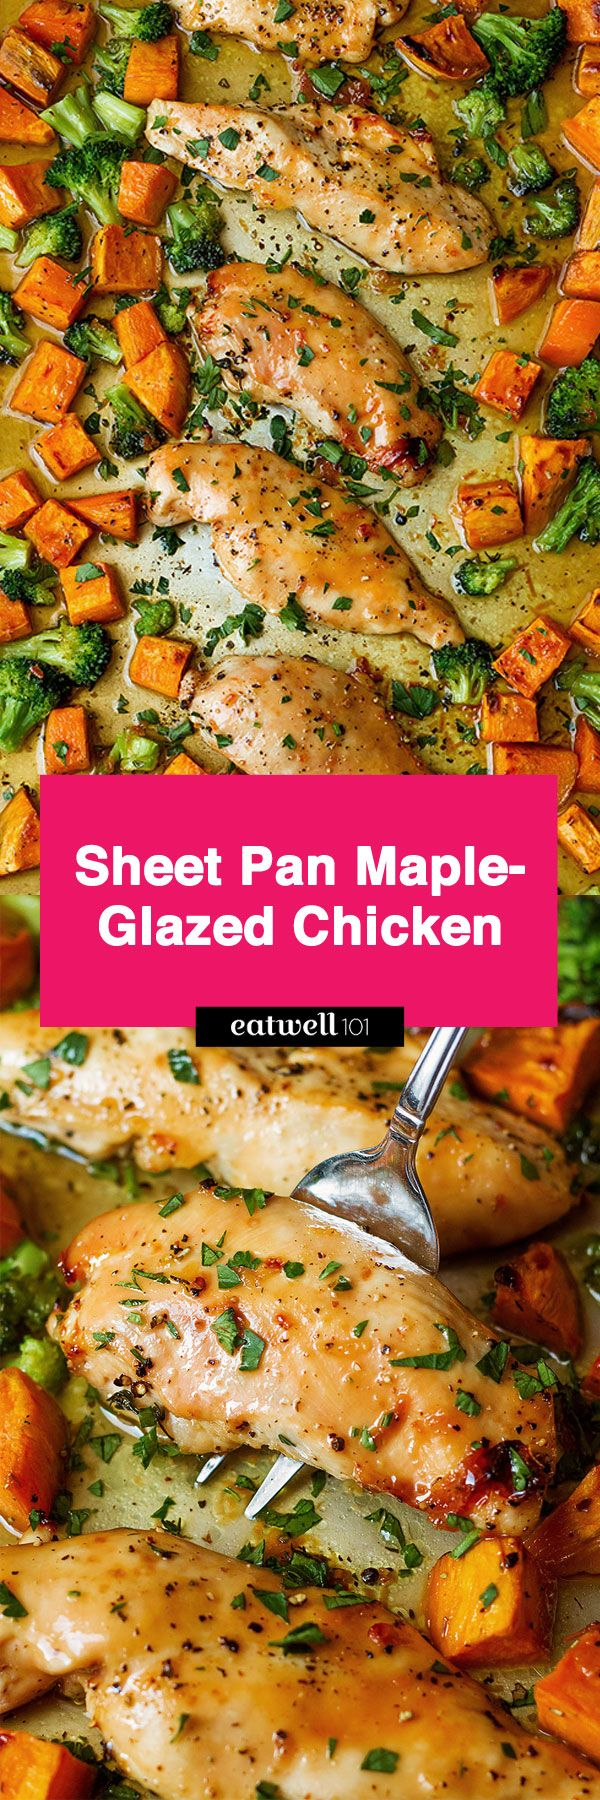 Sheet Pan Maple-Glazed Chicken and Sweet Potatoes – Sticky chicken breasts coated in a finger-licking maple butter glaze.